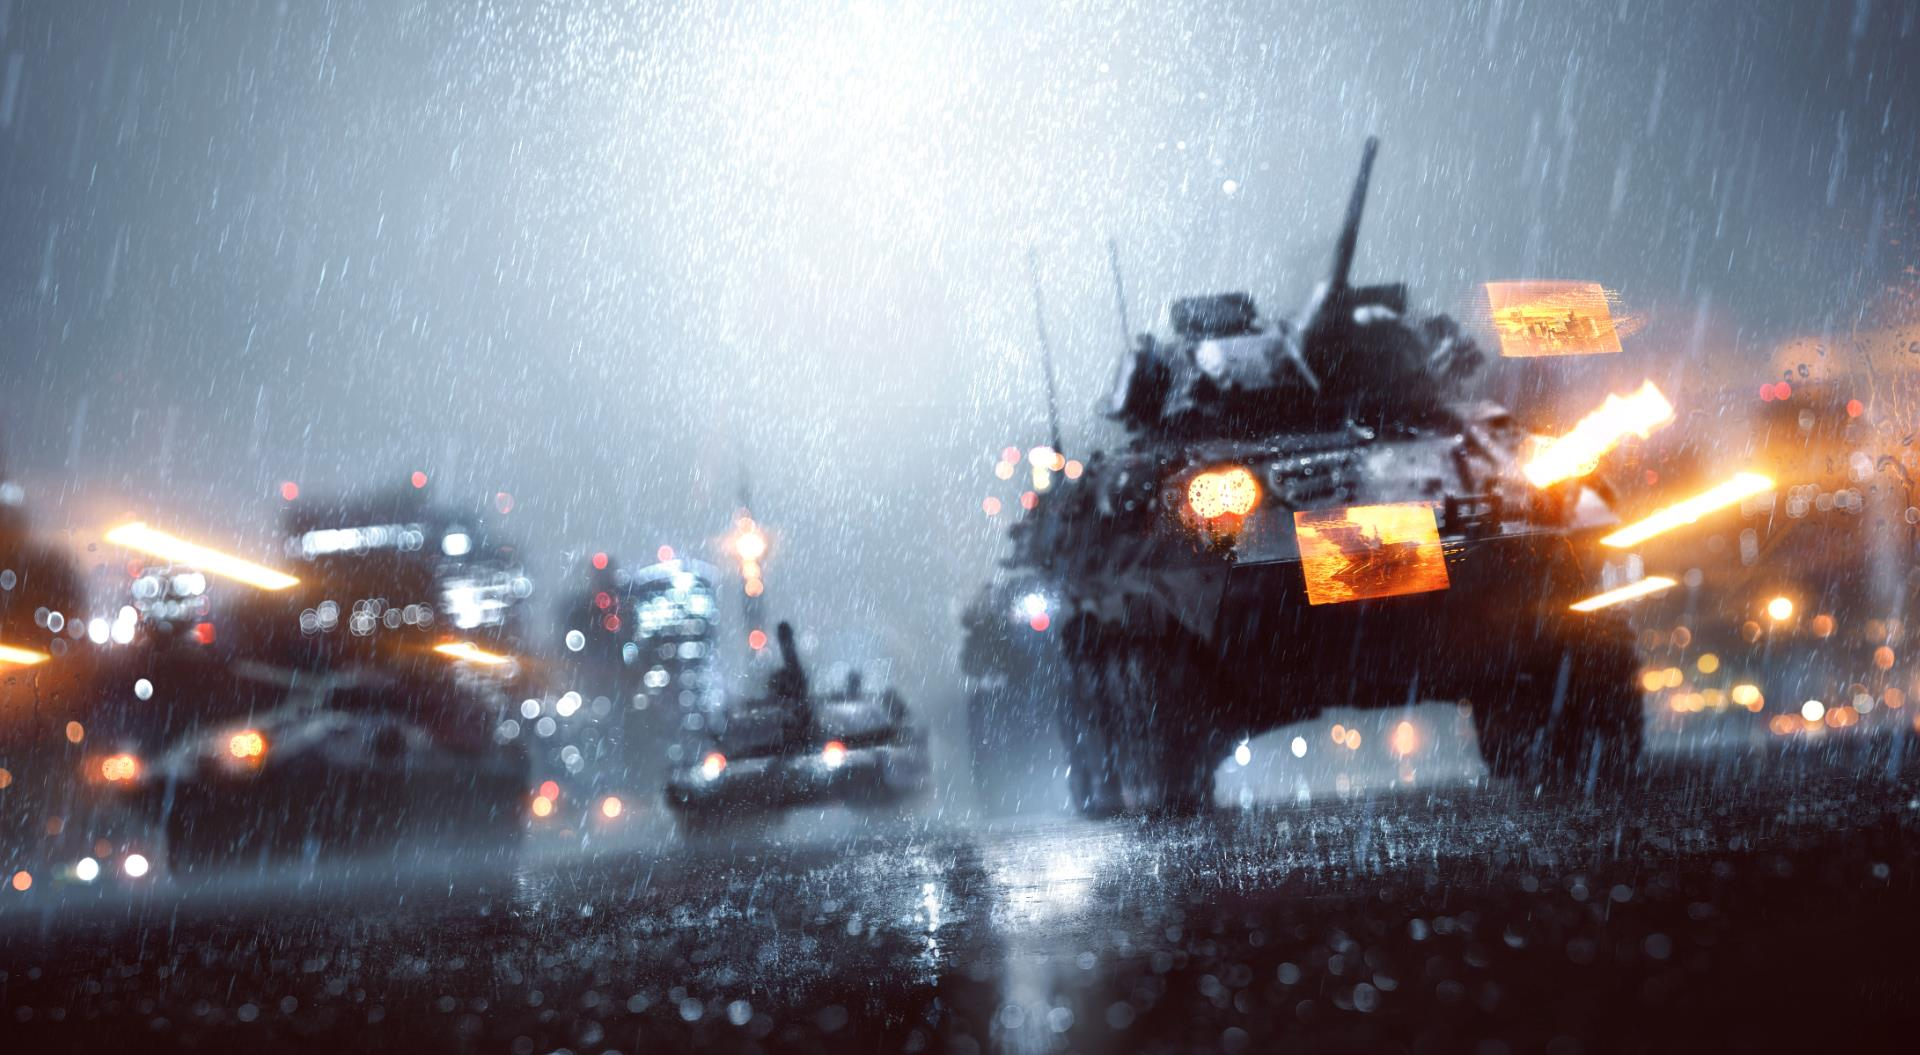 Battlefield 4 Background Wallpaper